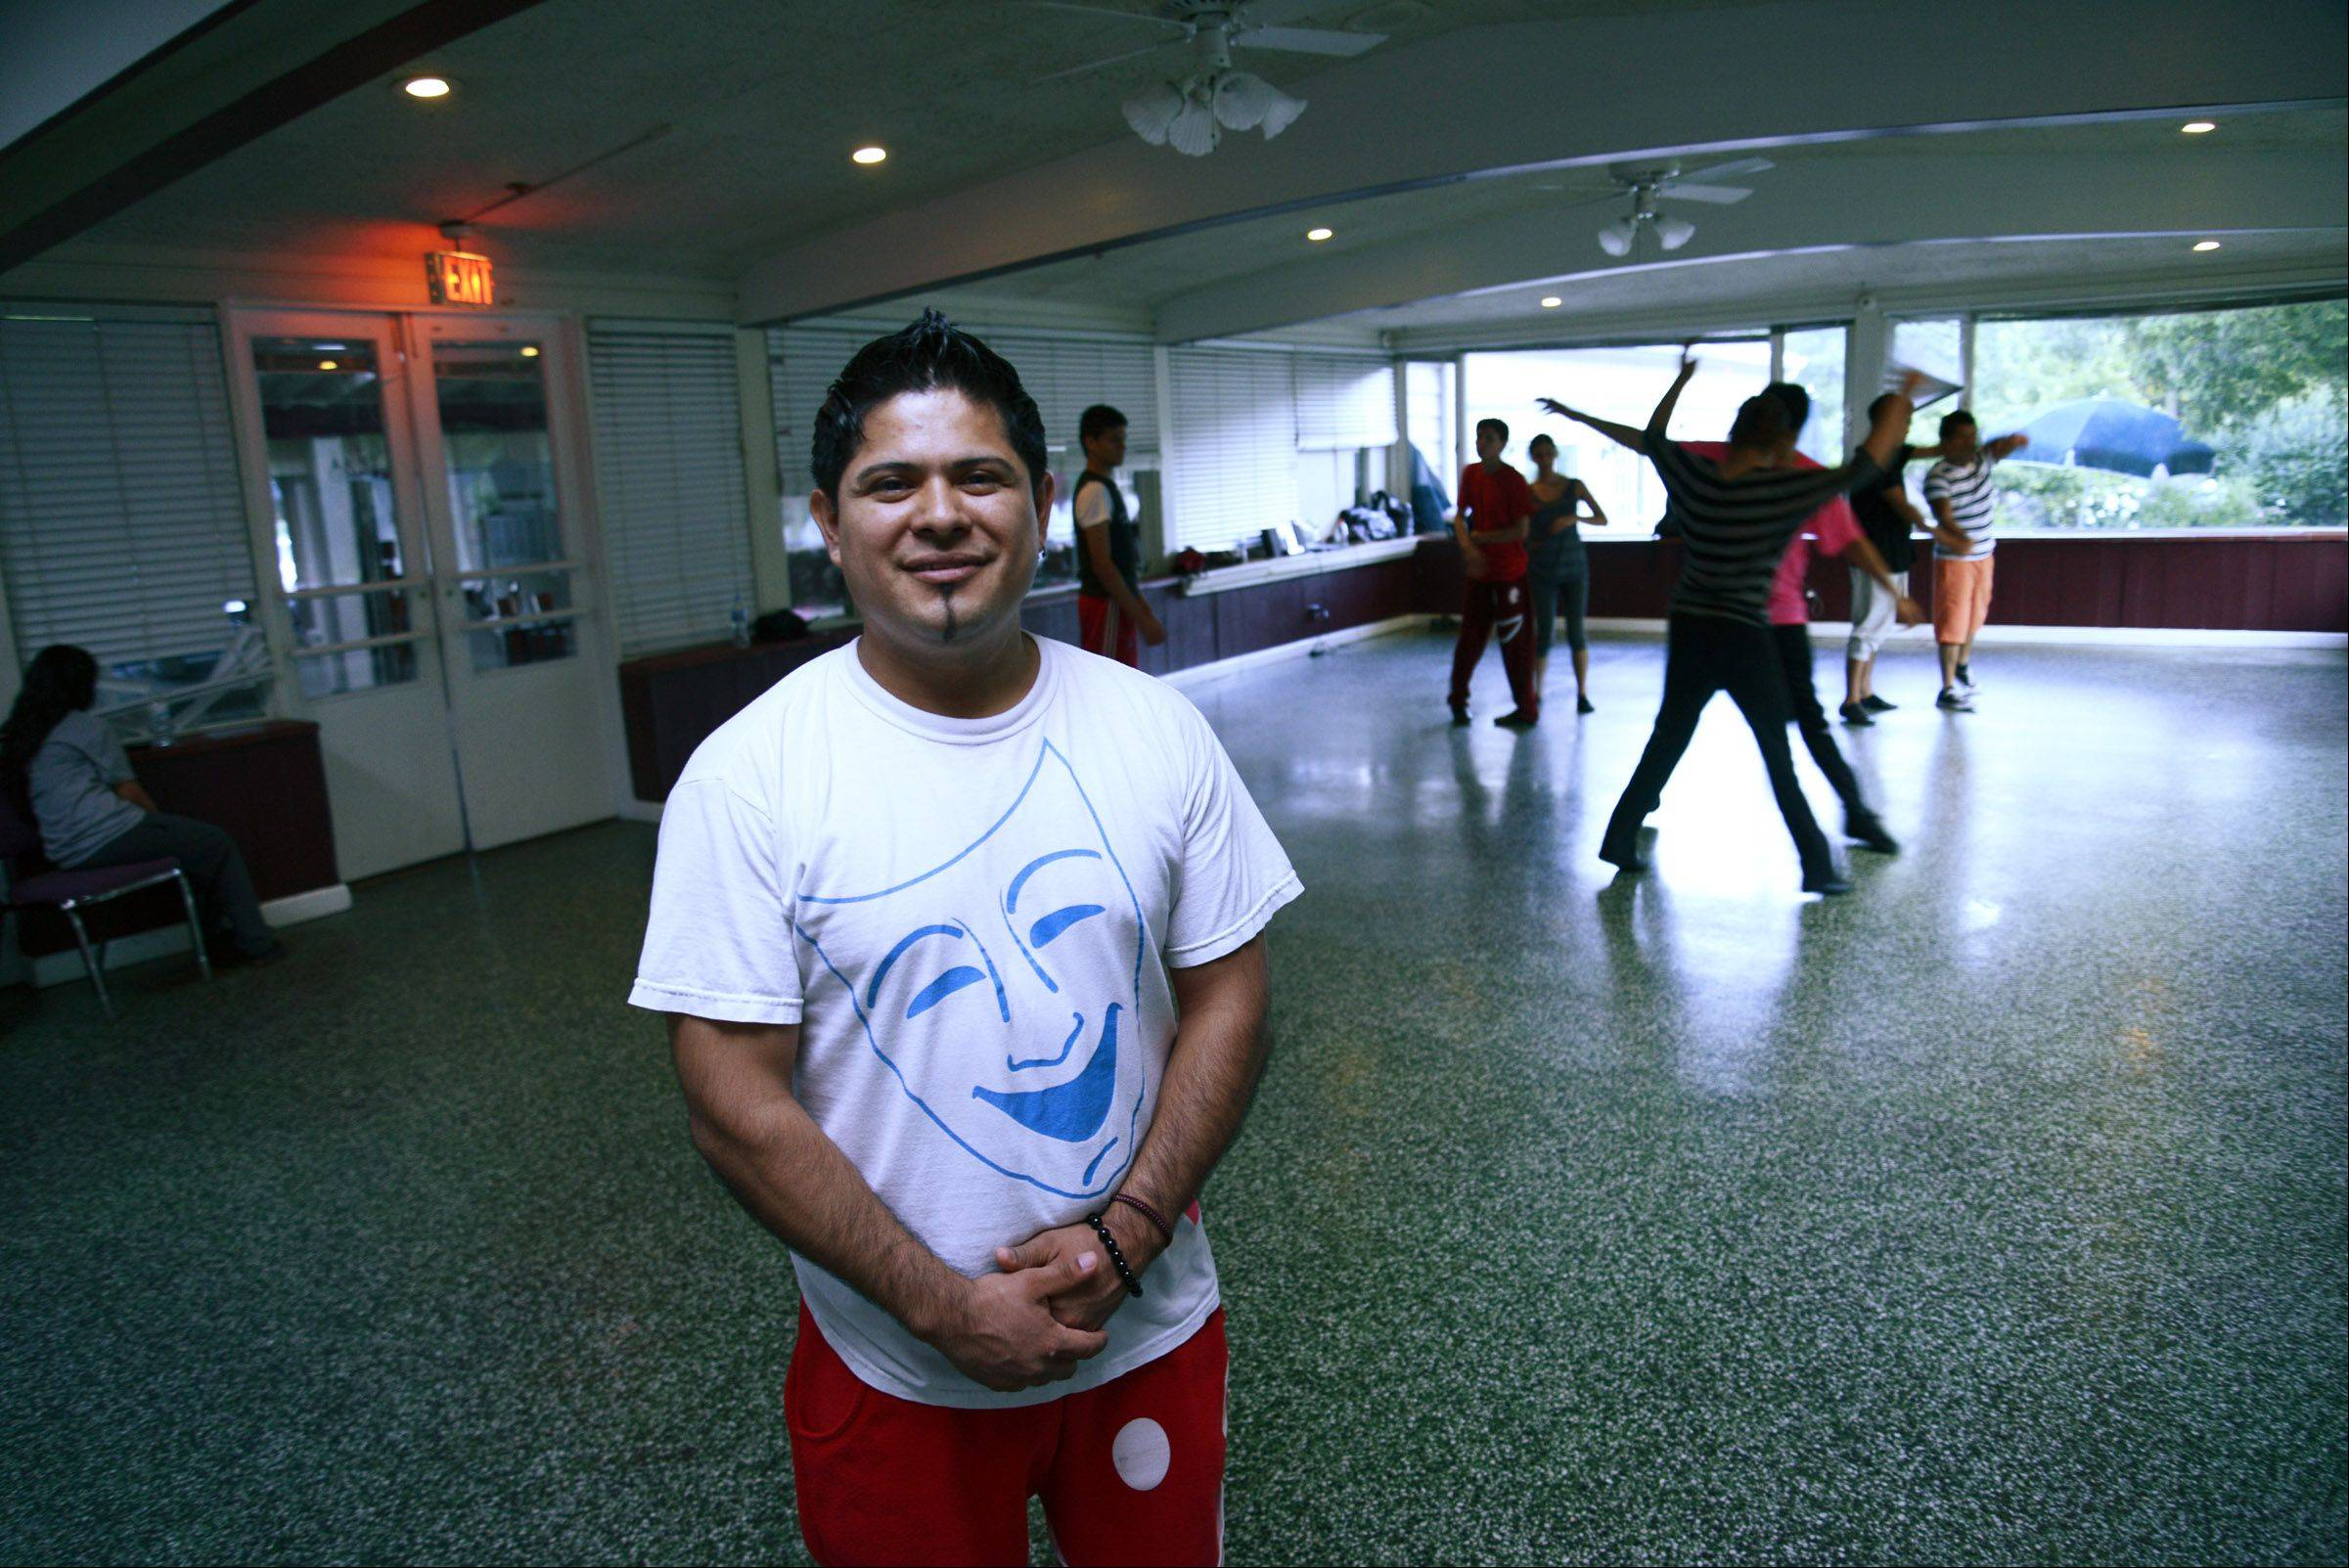 Ivan Moctezuma is co-owner of Ivangel Dance Studio, which is moving from East Dundee to Elgin.